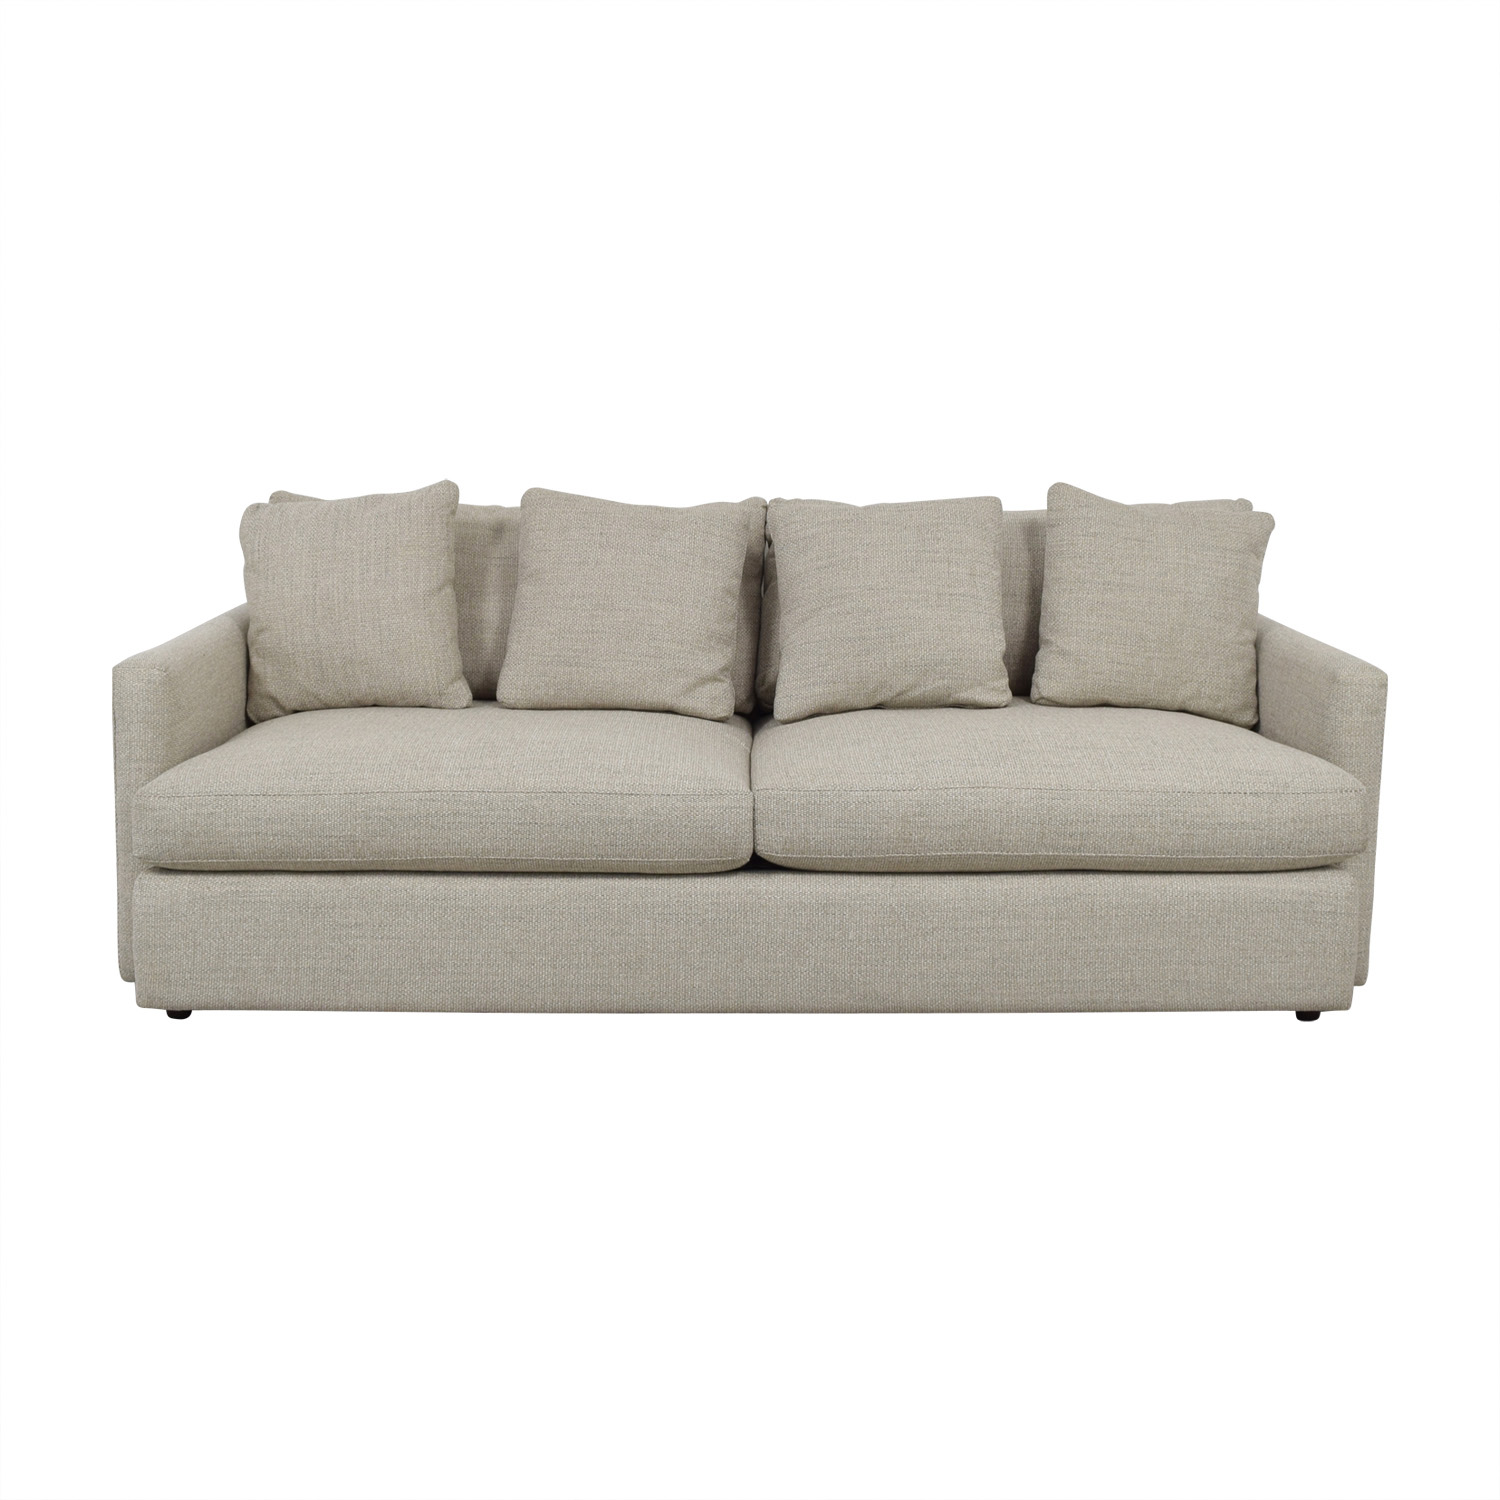 shop Crate & Barrel Lounge II Grey Two-Cushion Sofa Crate & Barrel